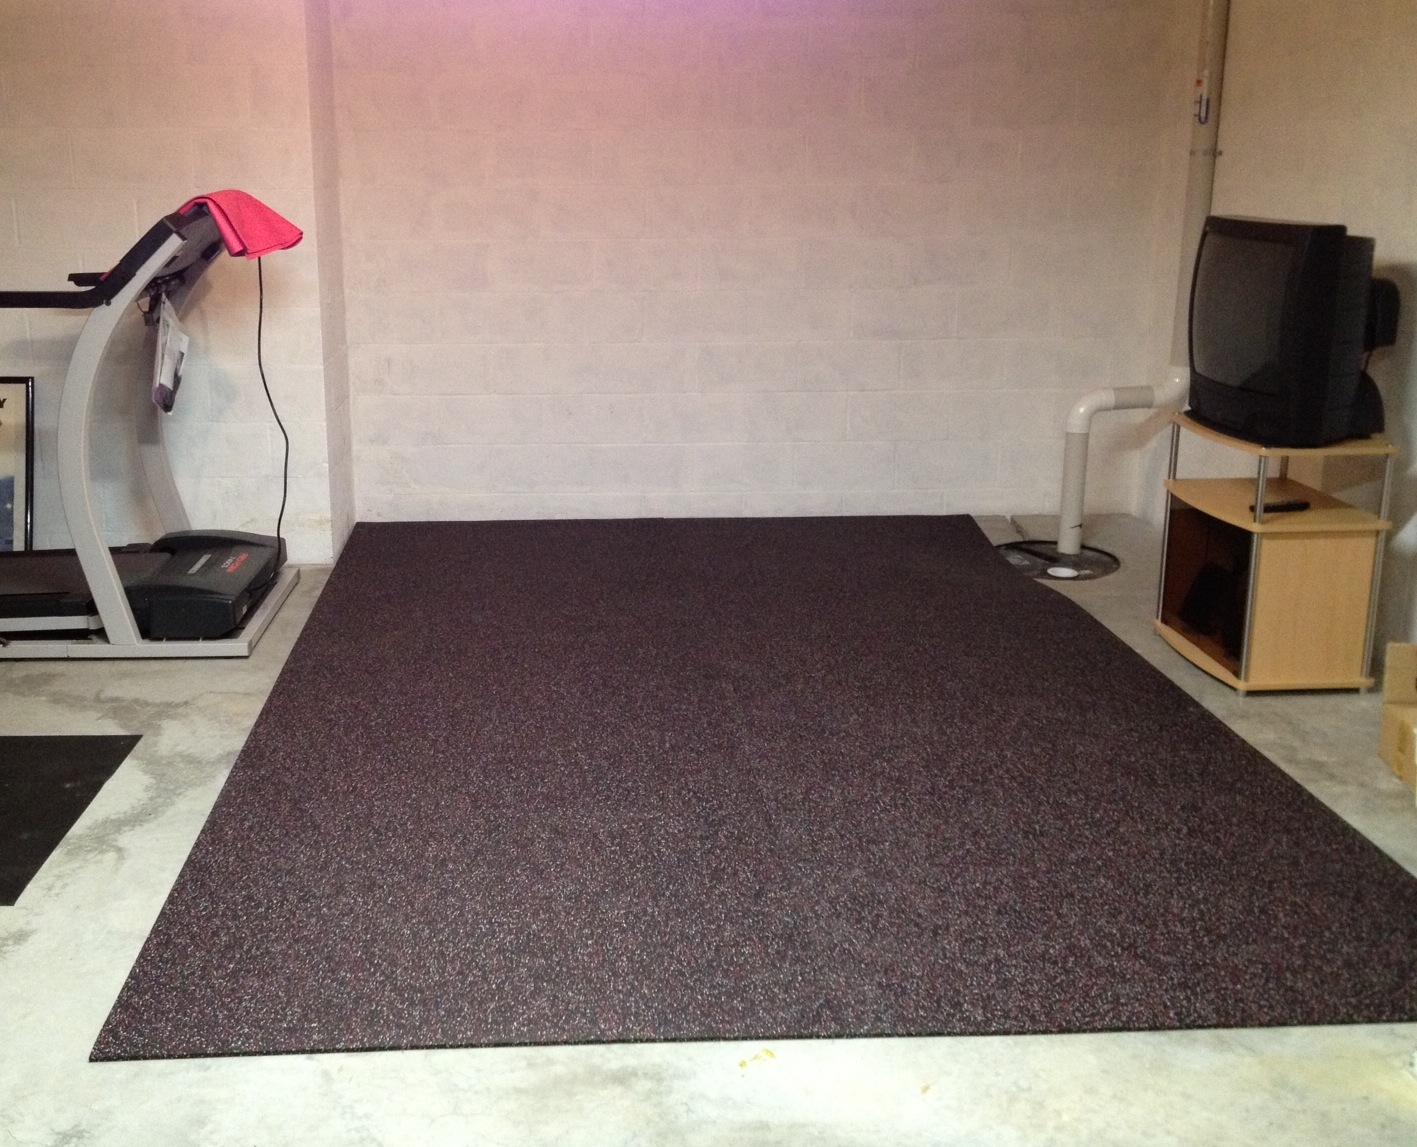 Floor mats gym - We Moved My Treadmill And Colby S Bike Trainer And Put Down The Floor It Came On A Roll That Was 4 Ft Wide So There Are Two Pieces The Floor Mat Is